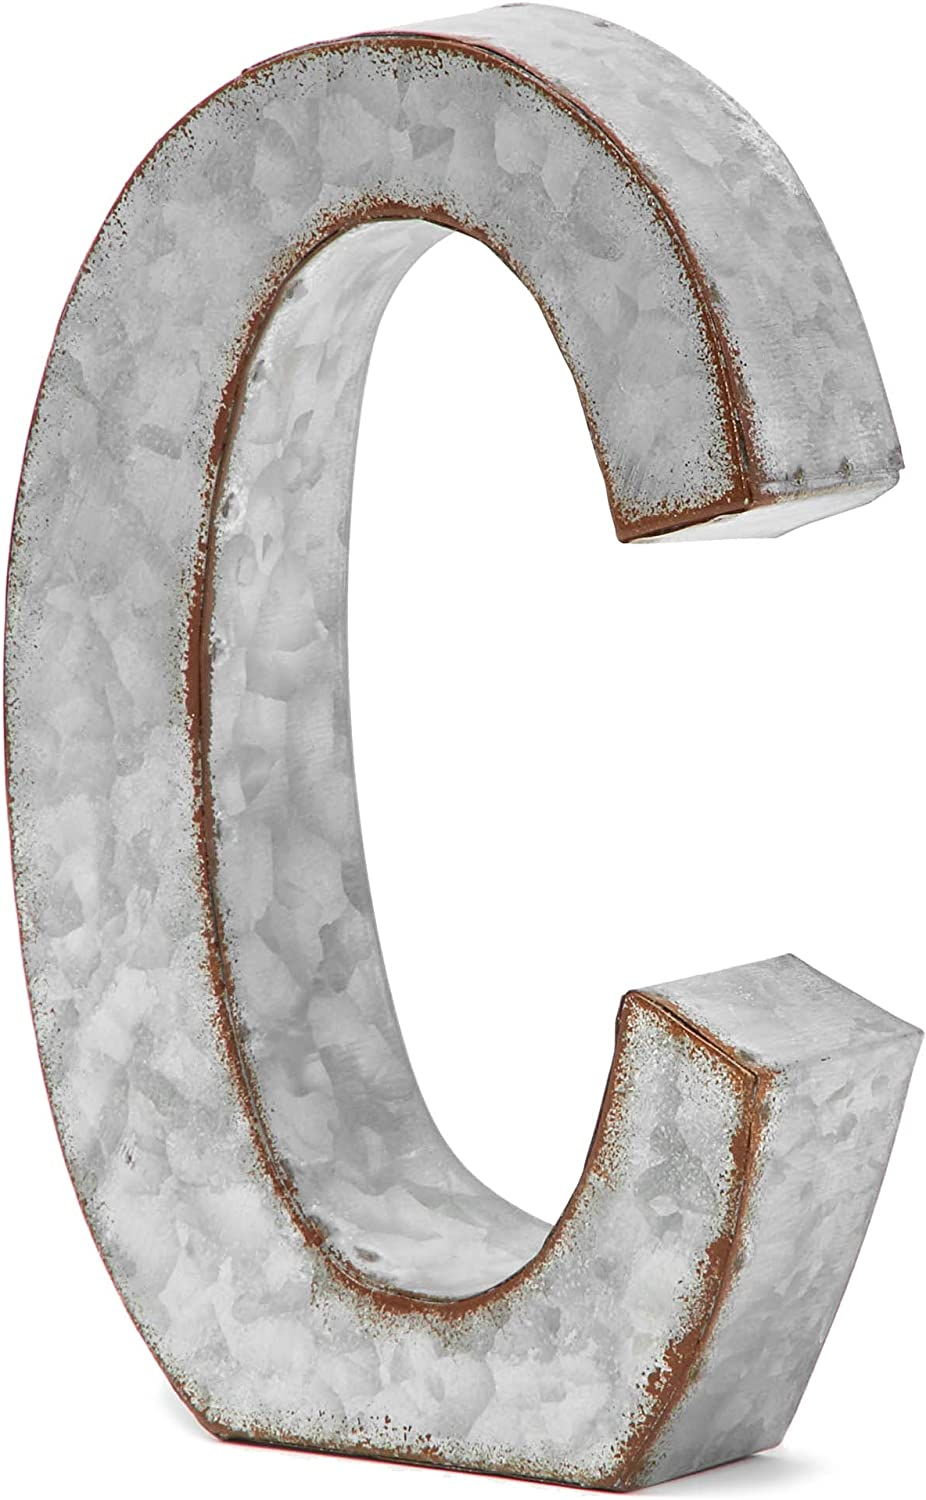 Bright Creations Rustic Letter Wall Decor - Galvanized Metal 3D Letter C Decor